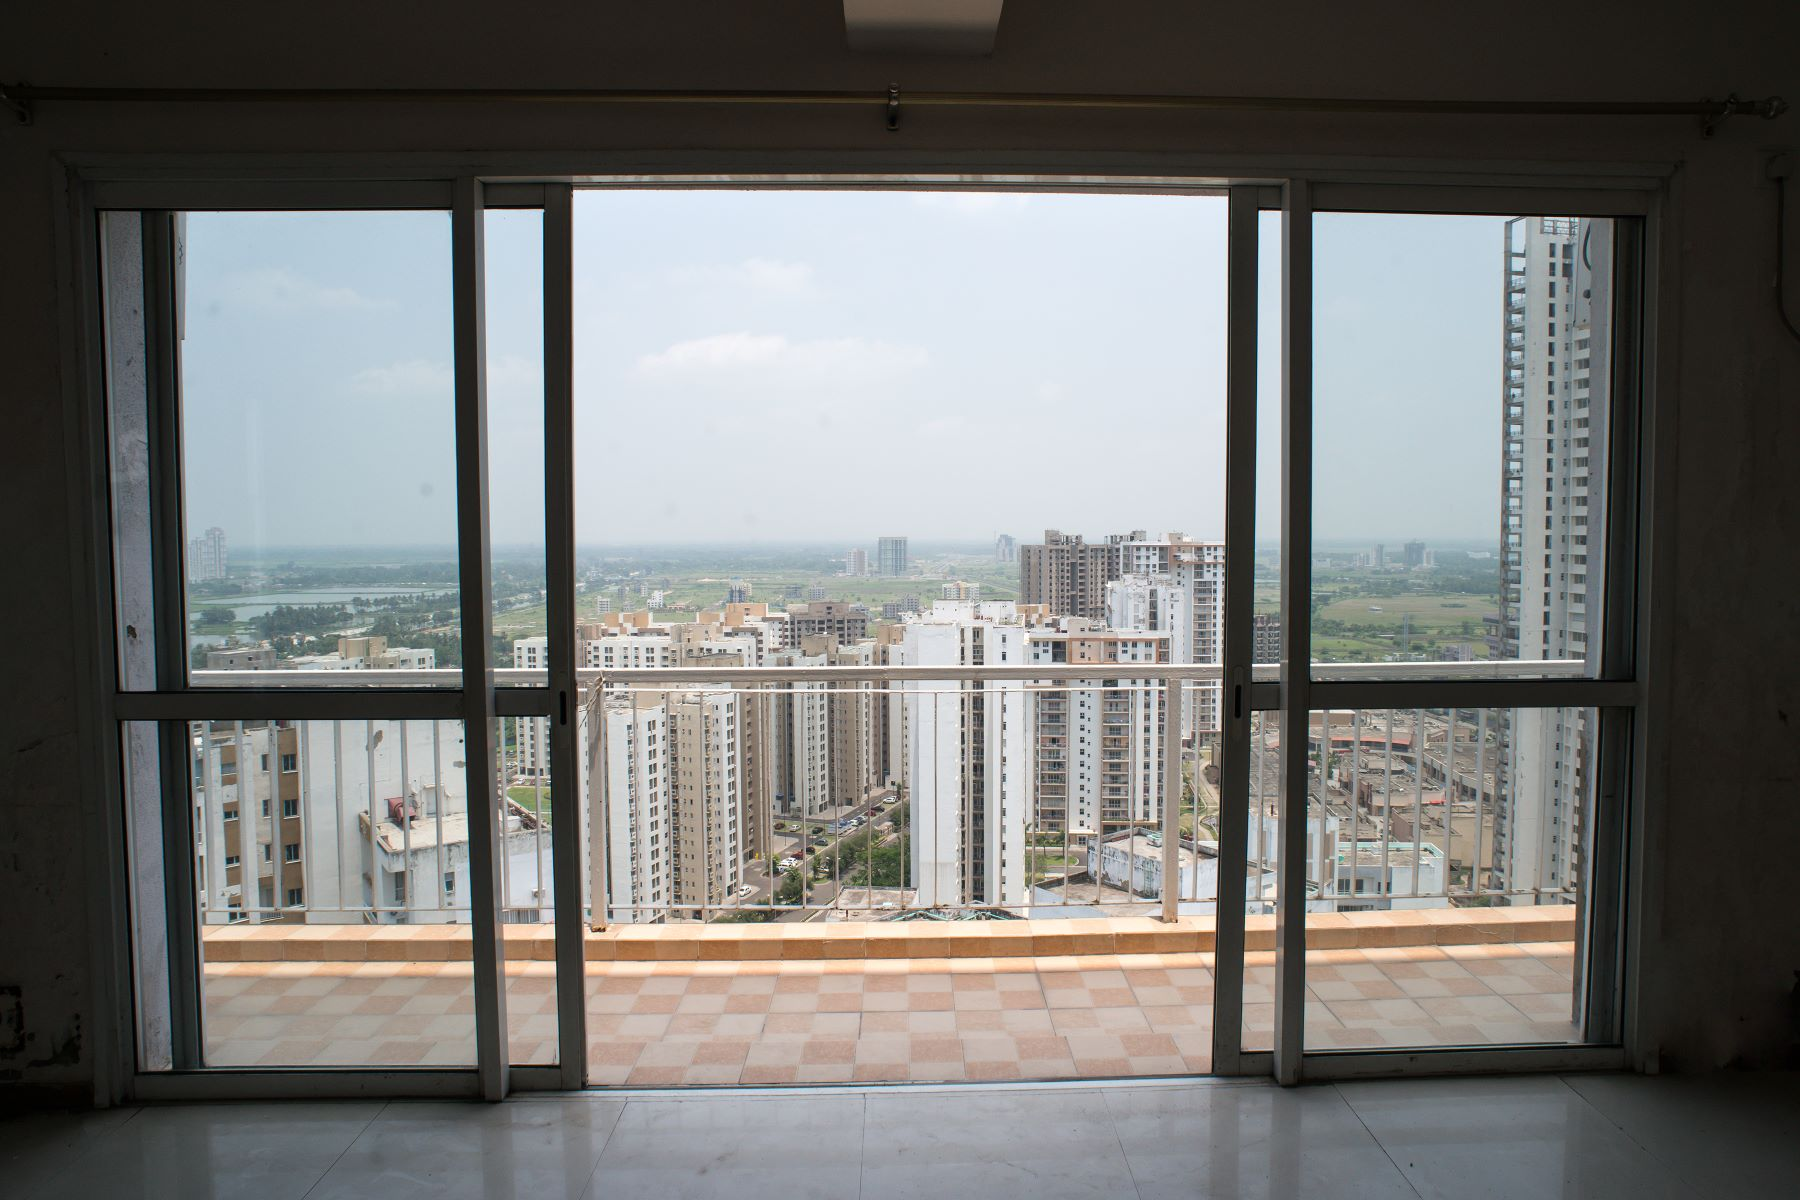 for Sale at Triplex Penthouse in Unitech Heights Unitech Heights, Uniworld city, Arterial Road New town, Rajarhat Kolkata, West Bengal 700156 India